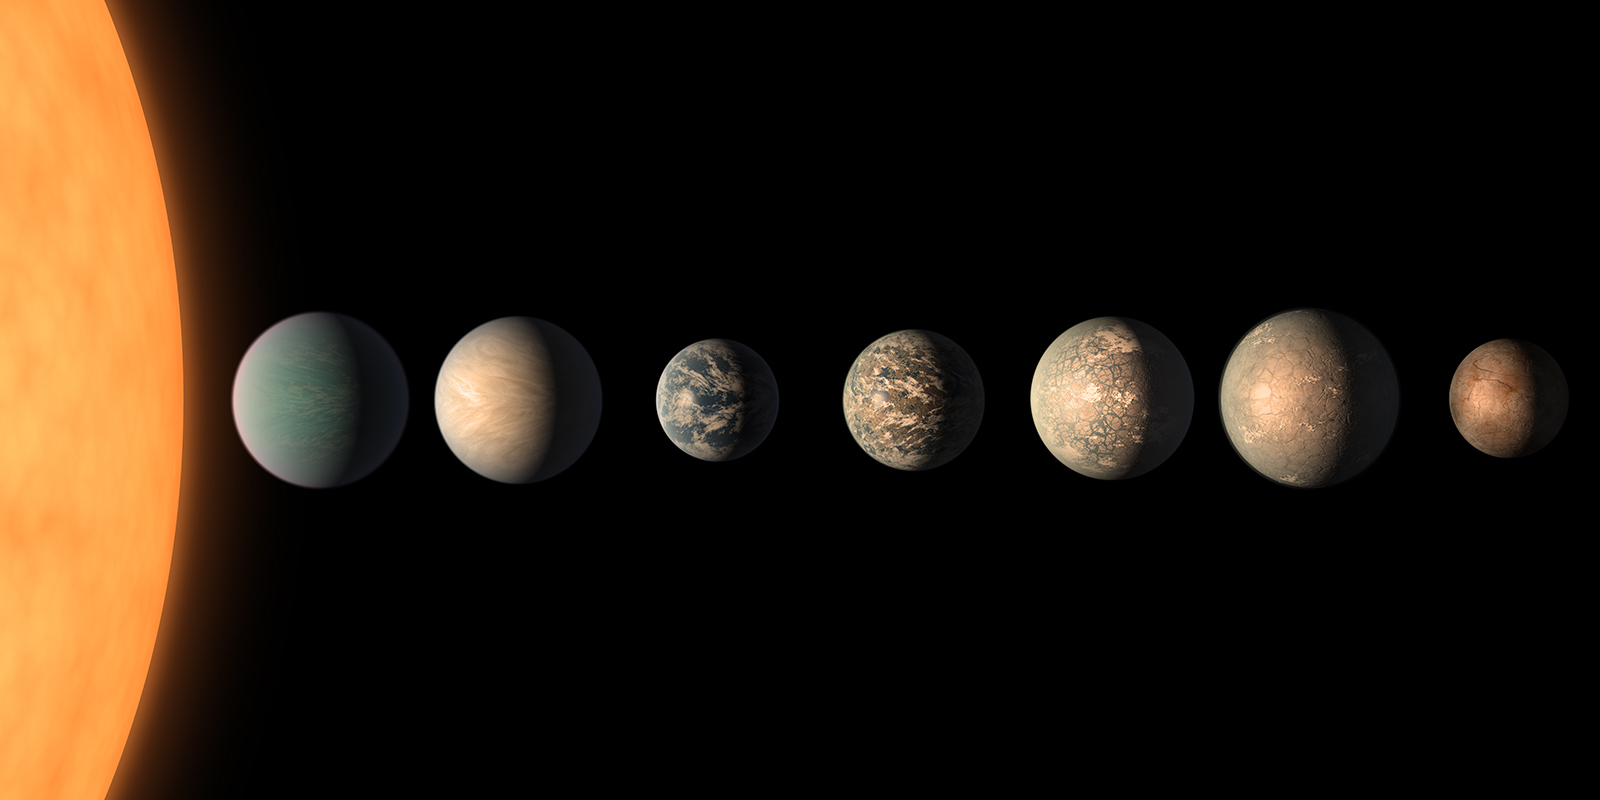 An image showing the exoplanets of the TRAPPIST-1 planetary system based on NASA Spitzer data.